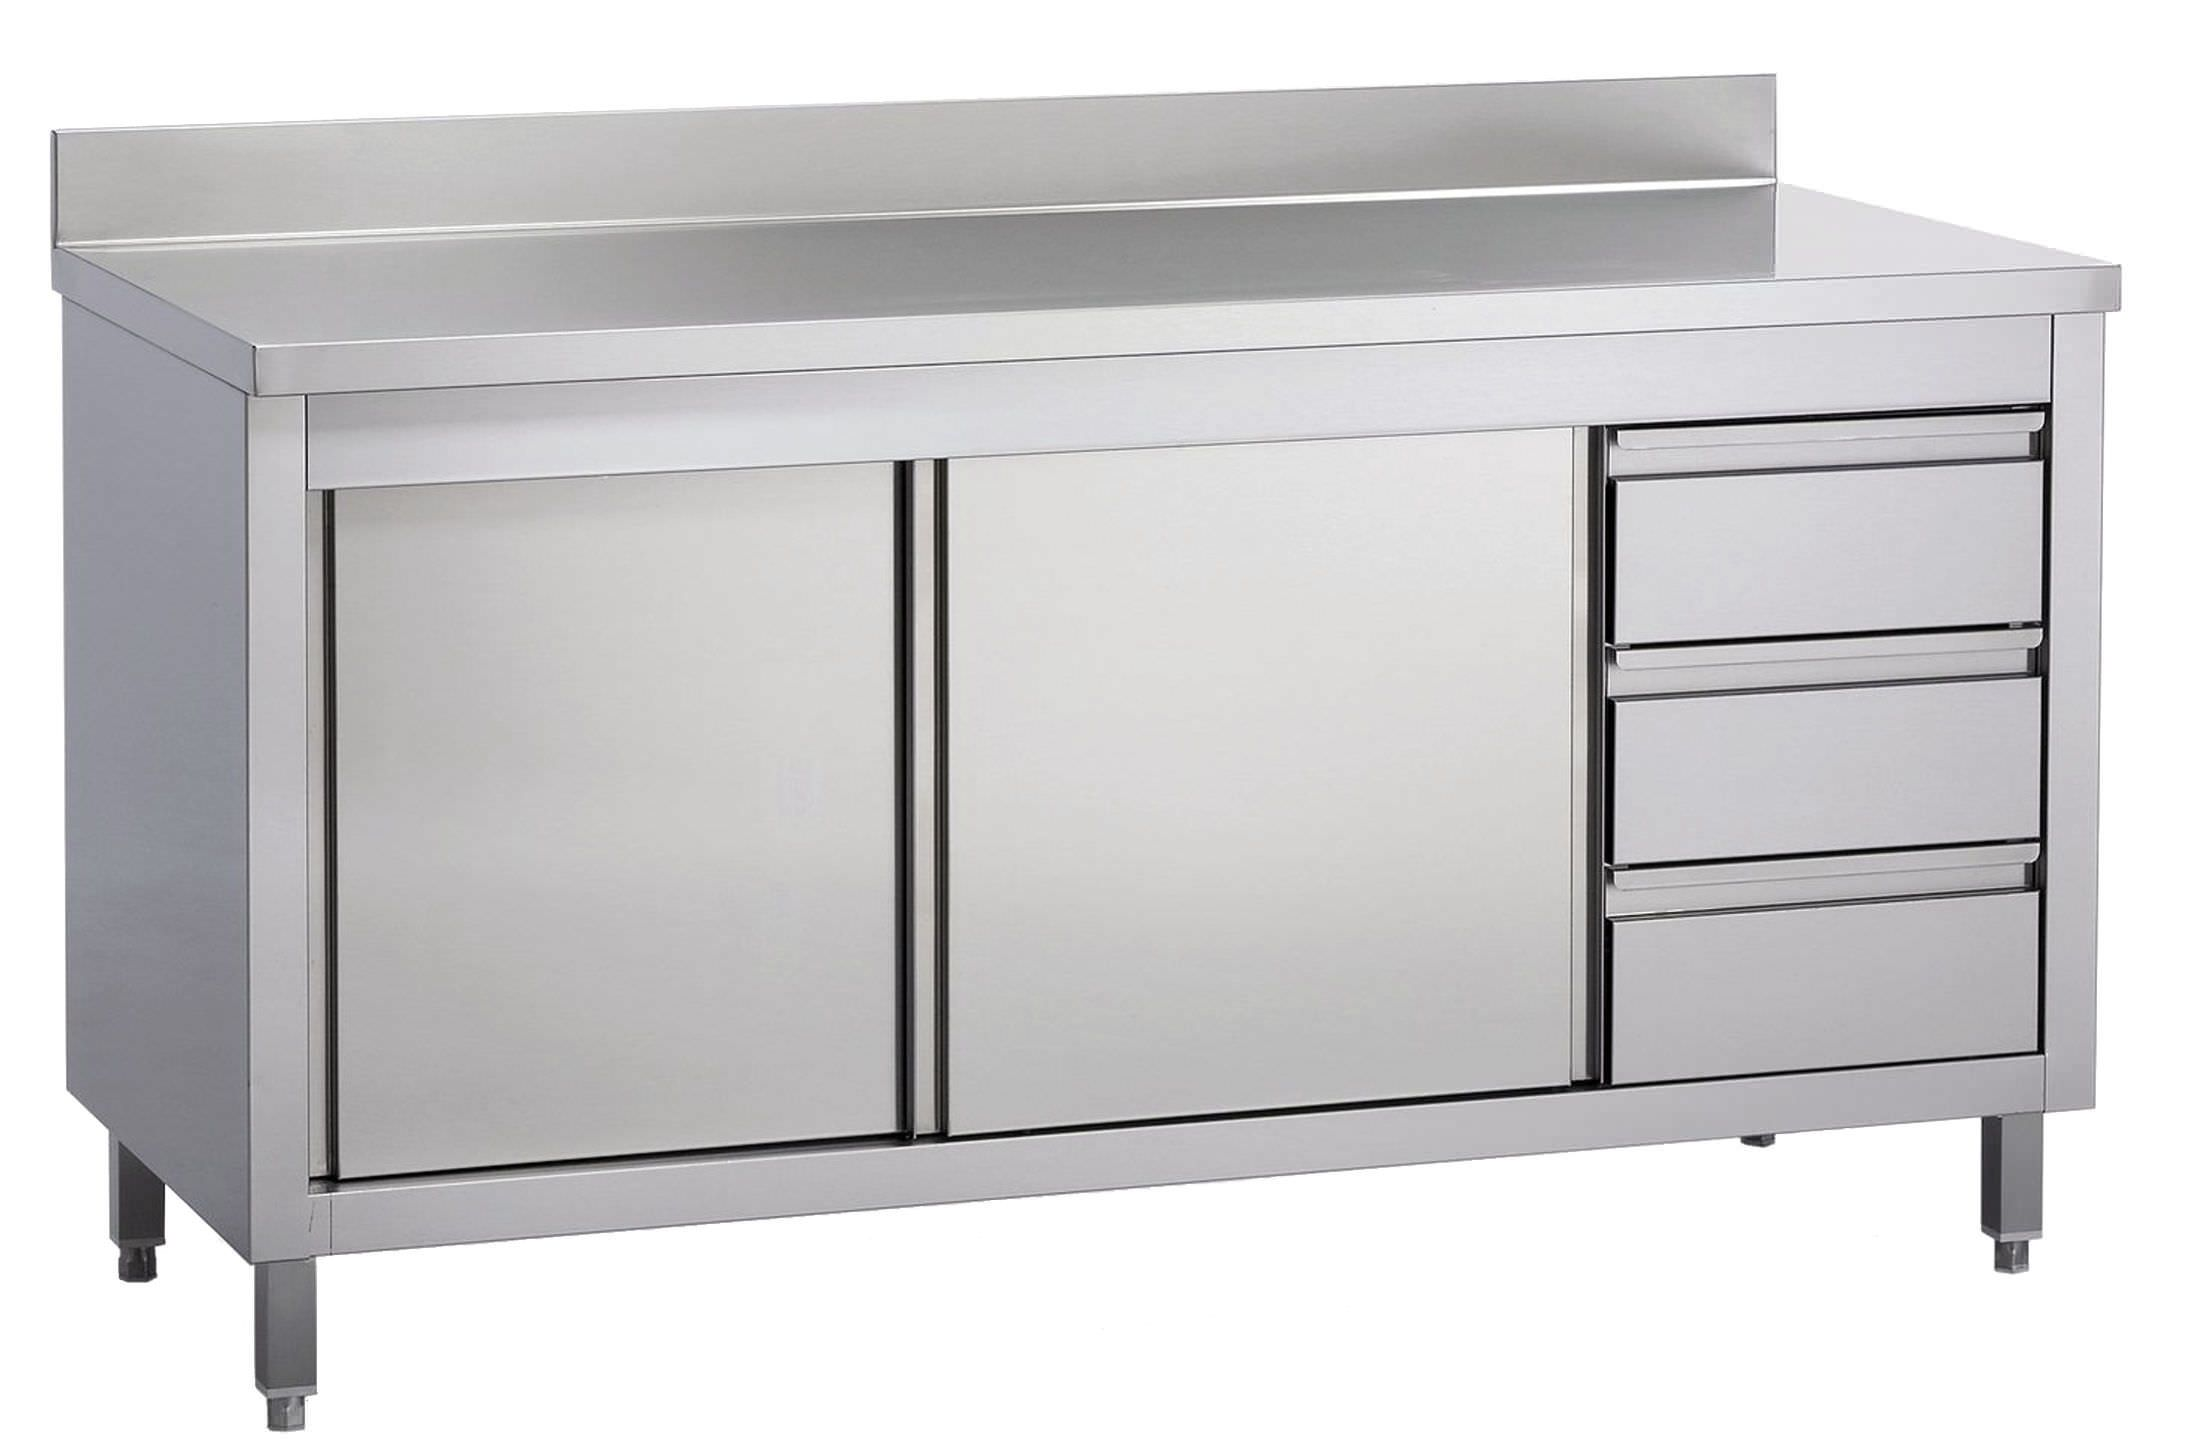 Stainless Steel Prep Table With Storage Compartment Elettrainox